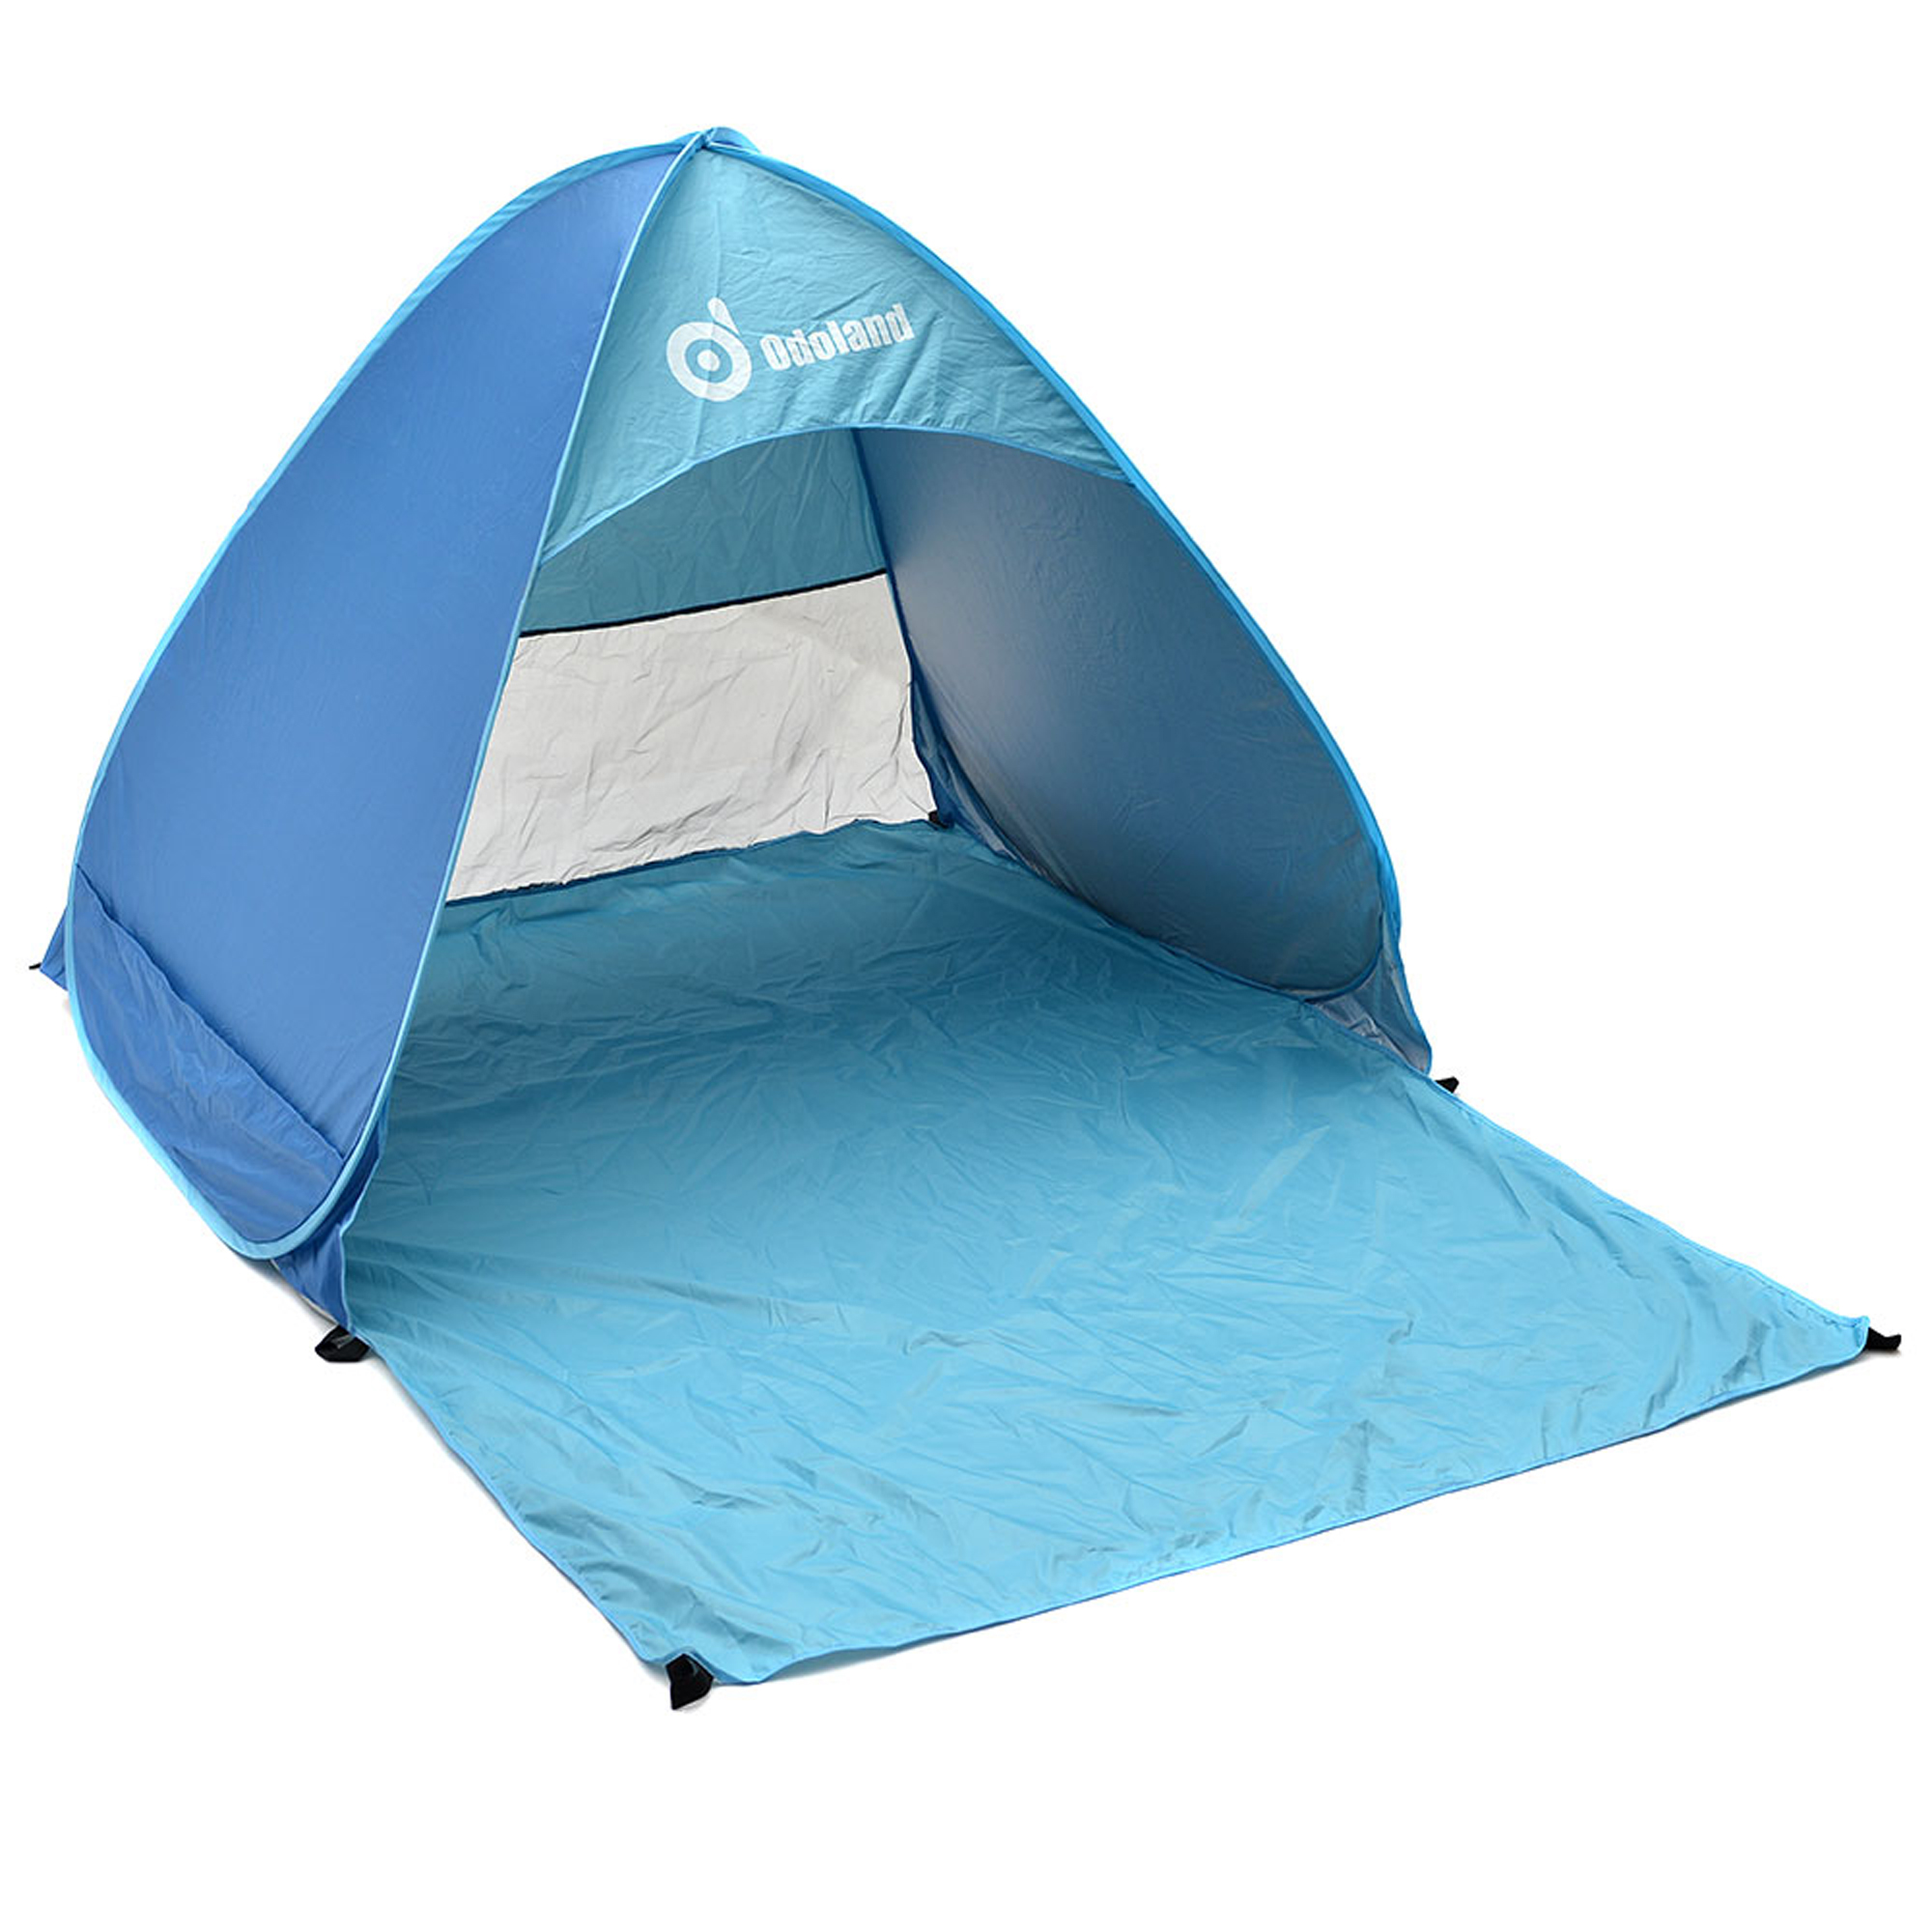 Instant Portable Outdoors Sunshade Basec& Folding Shelter Automatic Pop Up Cabana Beach Tent - Walmart.com  sc 1 st  Walmart : folding pop up beach tent - memphite.com